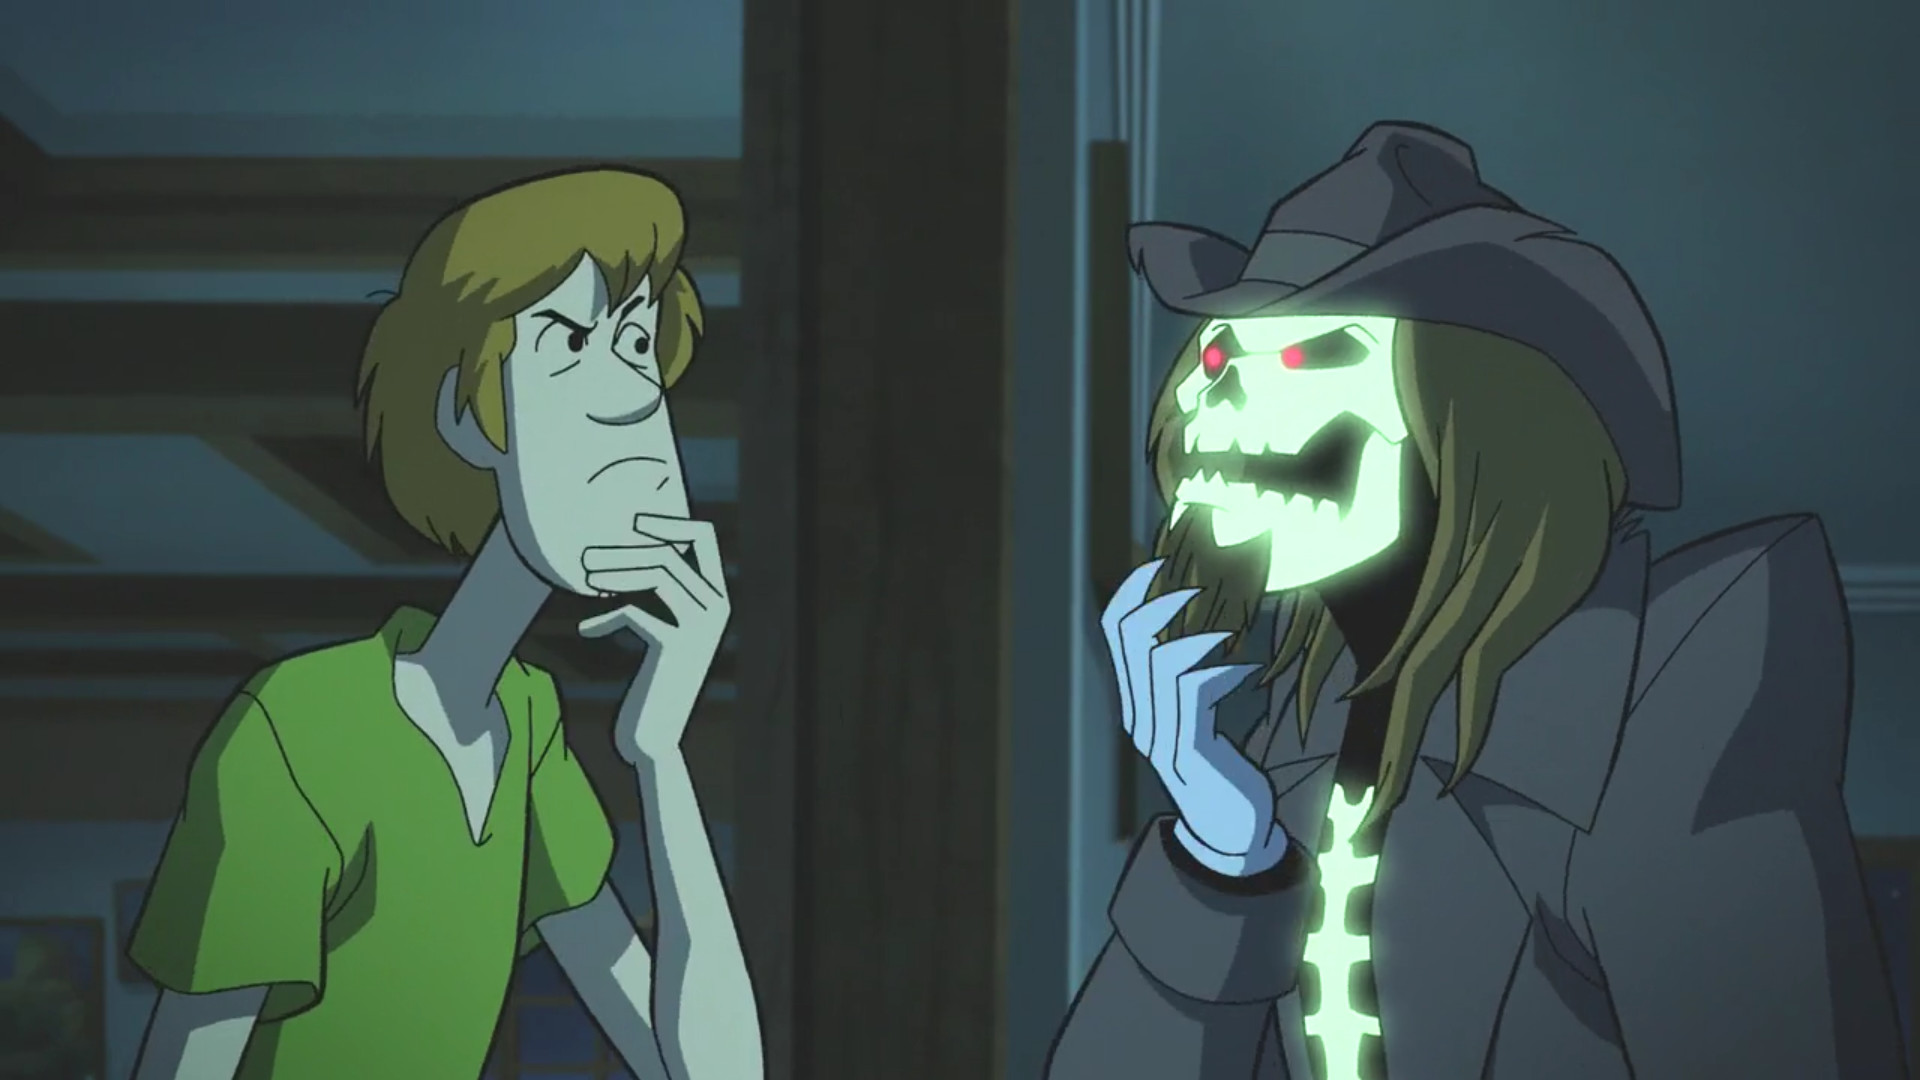 Scooby doo backgrounds 66 images 1920x1080 getting inside the mansion wont be so easy the front doors slam shut when you approach revealing the chroma colors you need to match voltagebd Gallery